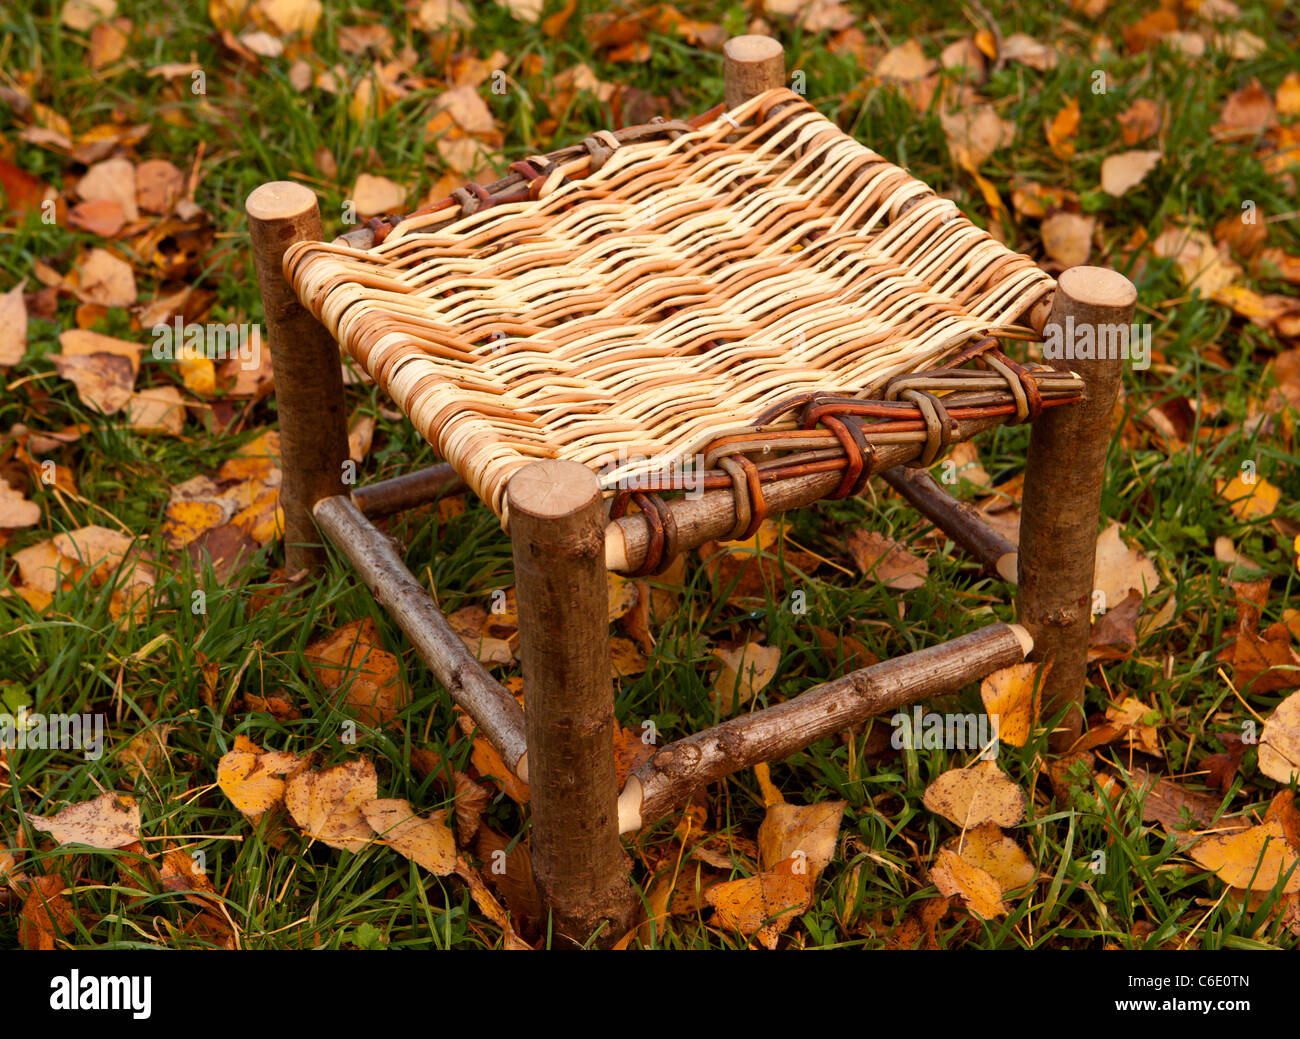 Woven Willow Stock Photos Amp Woven Willow Stock Images Alamy